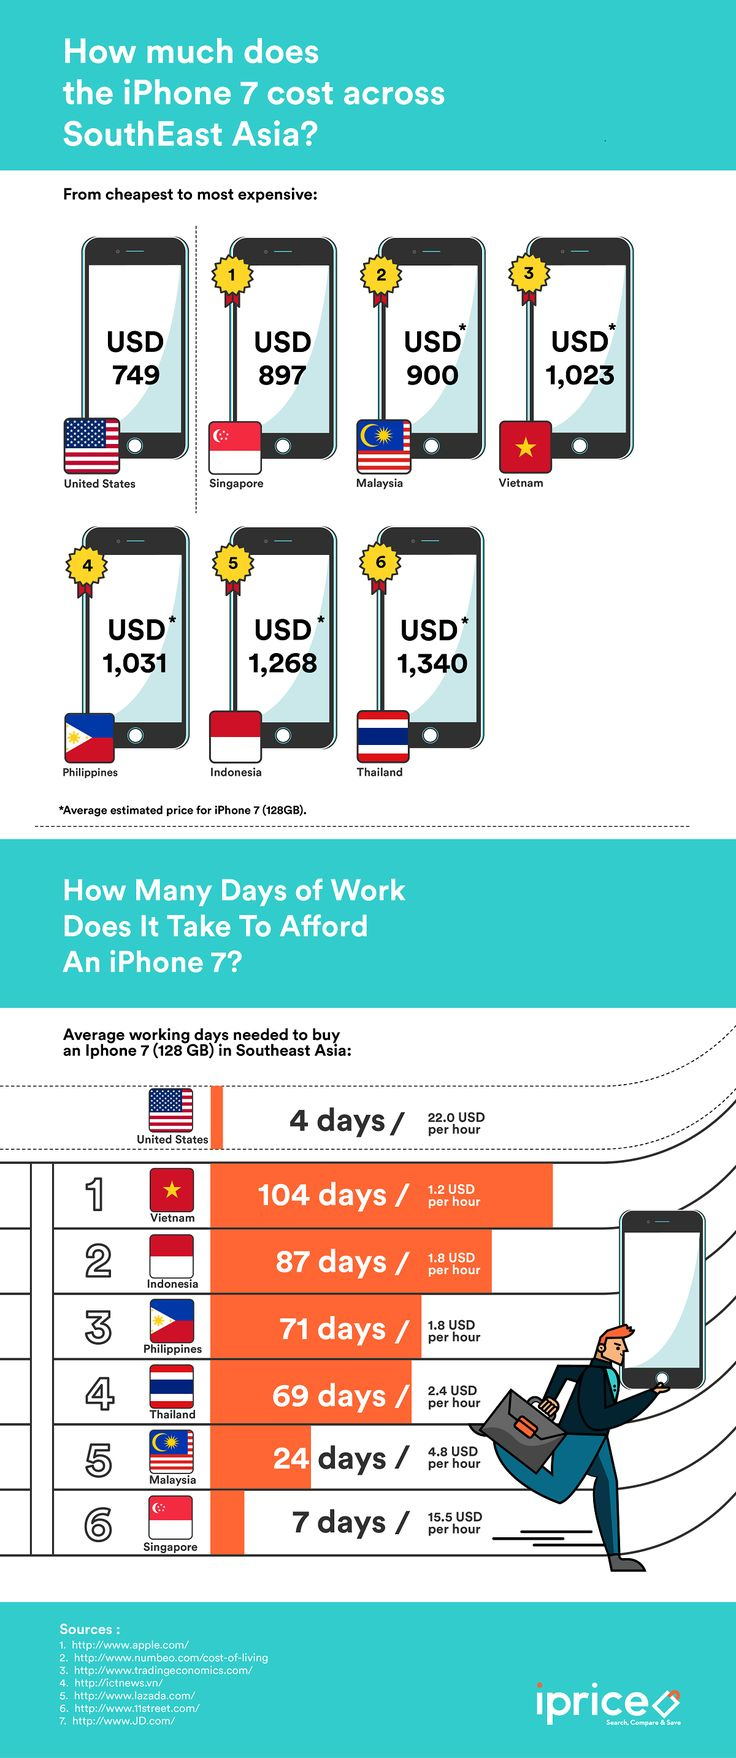 How Much Will The iPhone 7 Cost in South East Asia? #Infographic #Finance #Mobile